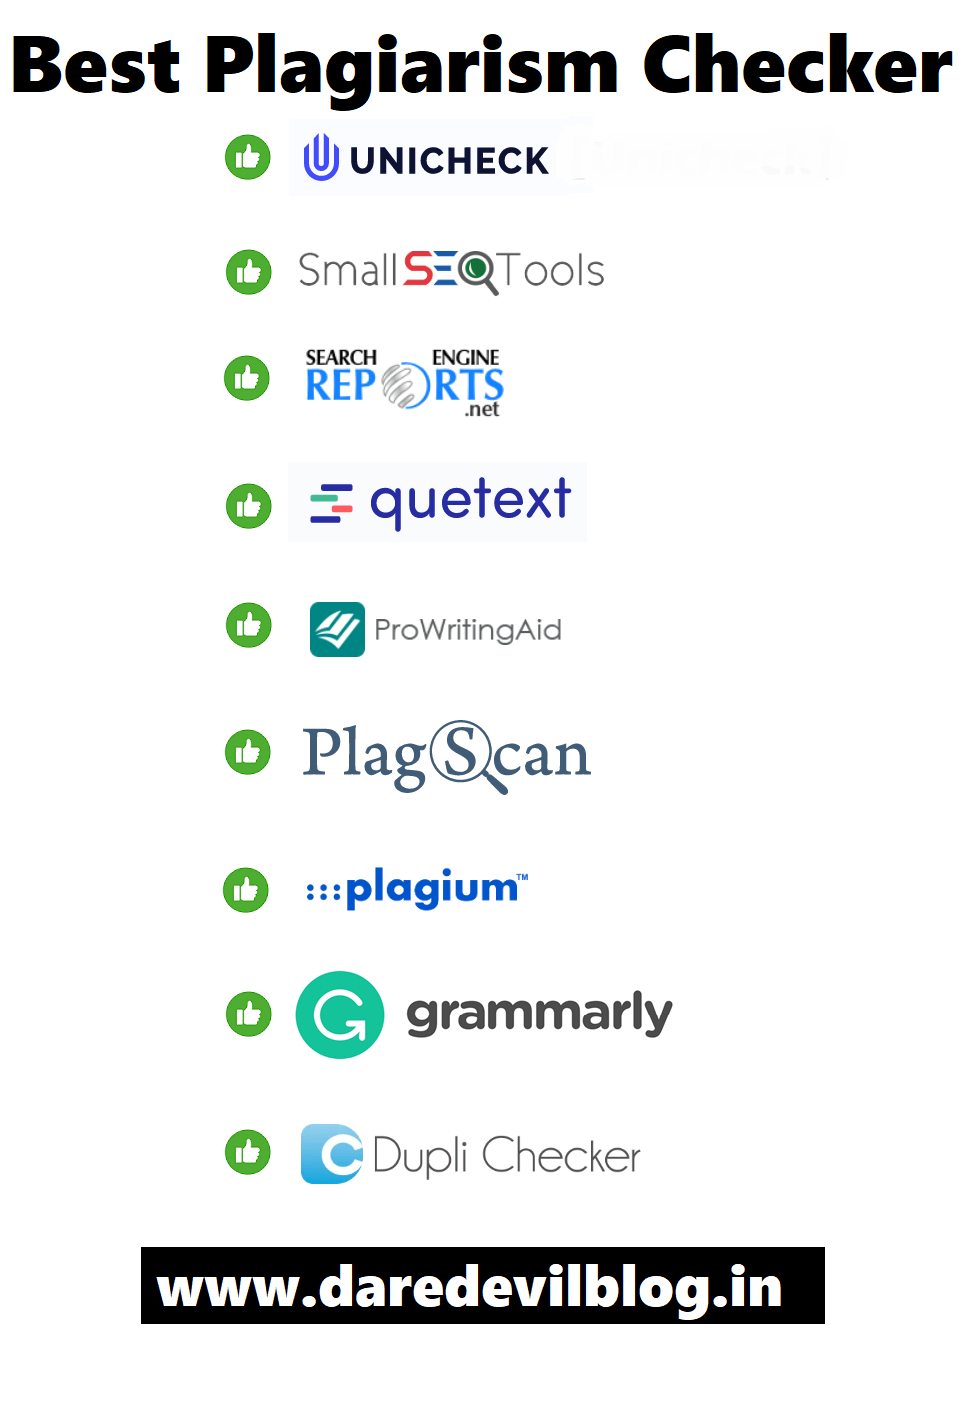 What is the best Plagiarism Checker, 10+ Best FREE Plagiarism Checker Software, Best plagiarism checkers of 2021, Best Plagiarism Checker (2021)